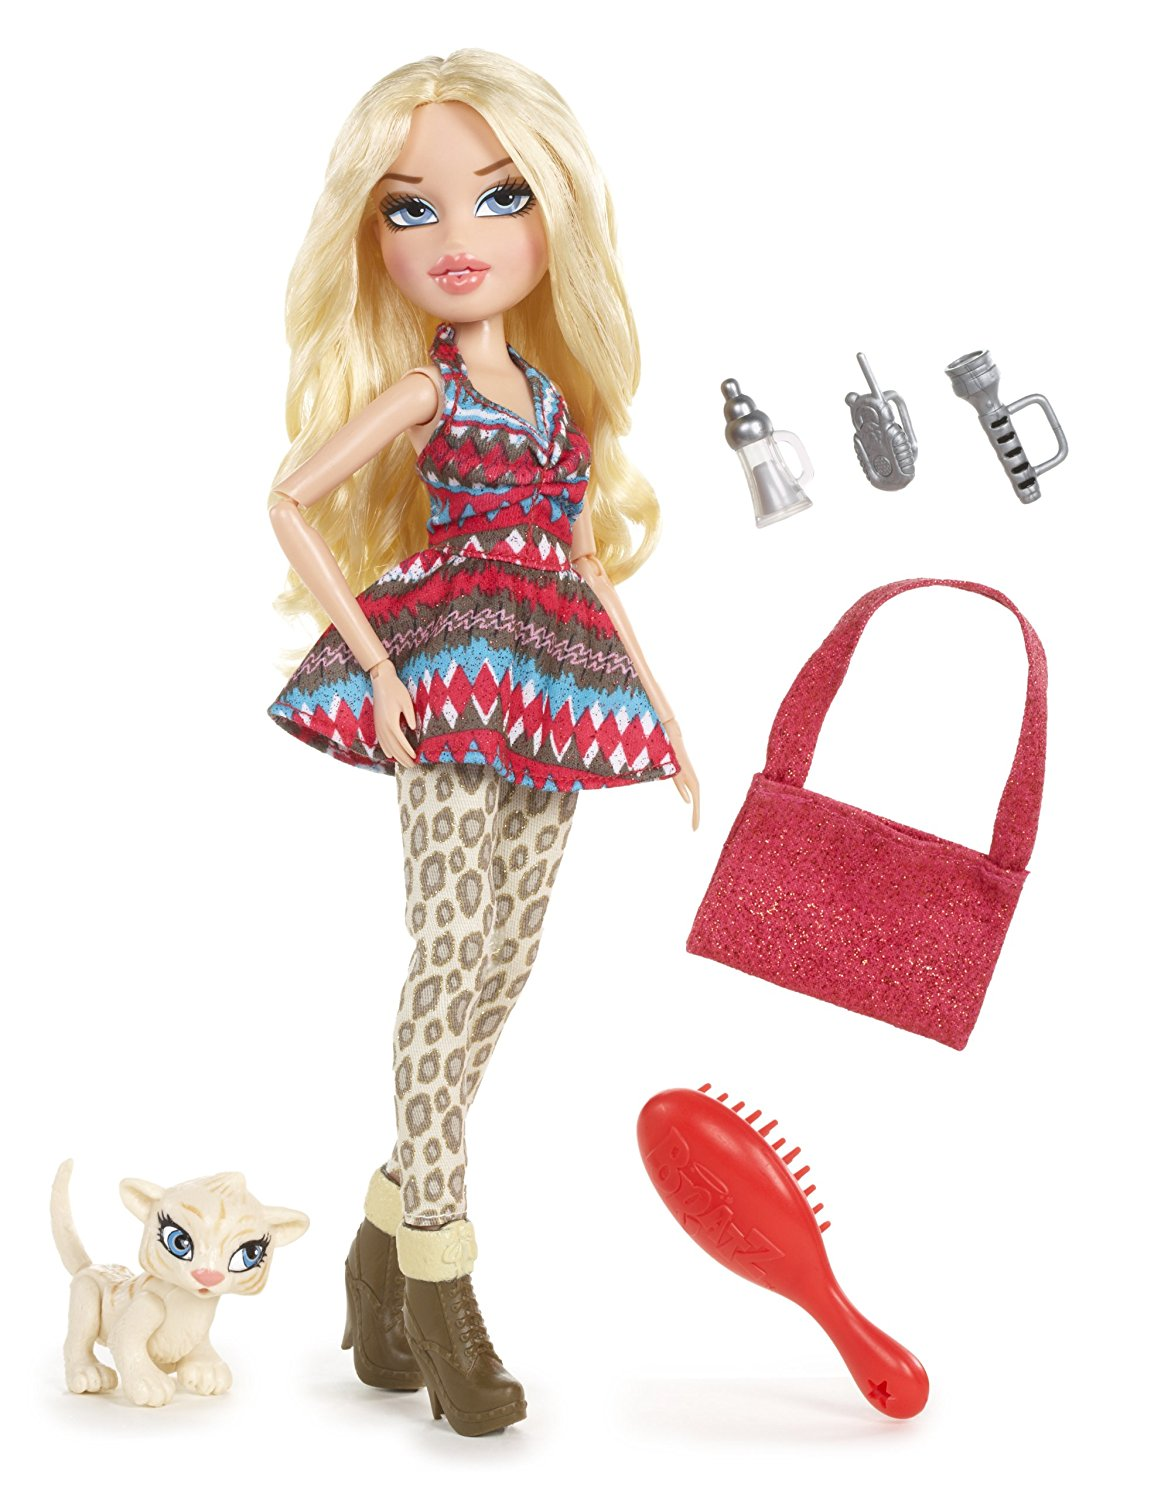 in The Wild Cloe Doll, Stylish safari fashions and hiking accessories By Bratz Ship from US by